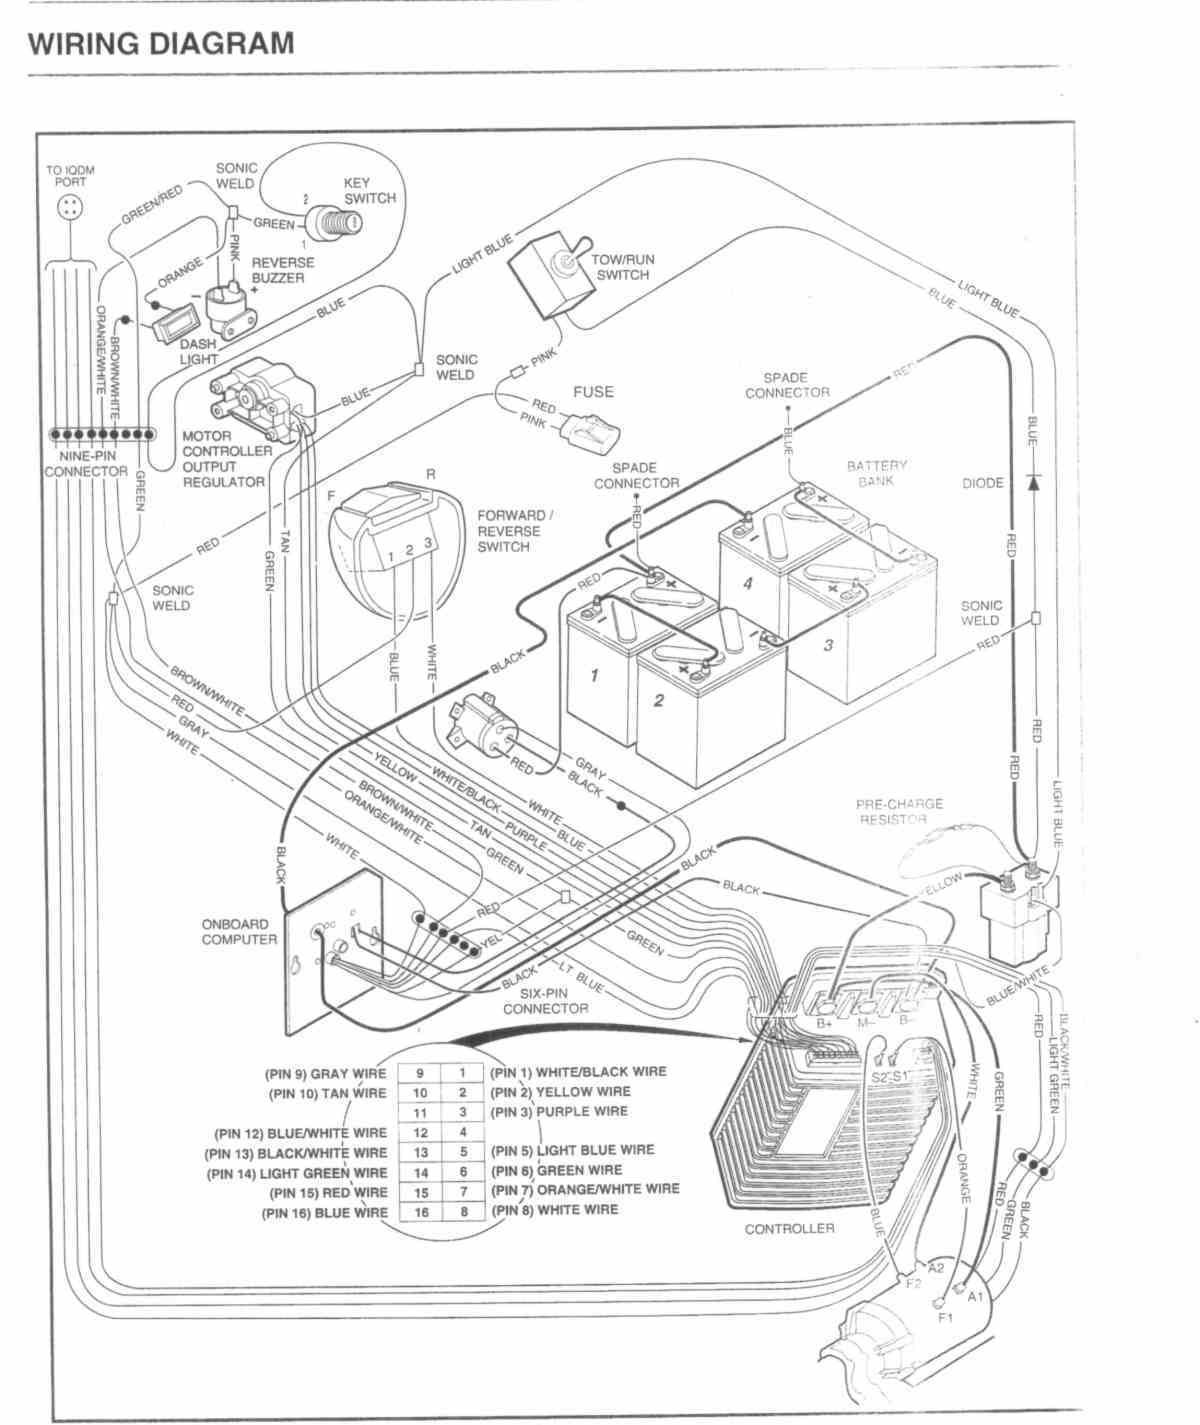 1987 club car 36 volt wiring diagram central door lock 1986